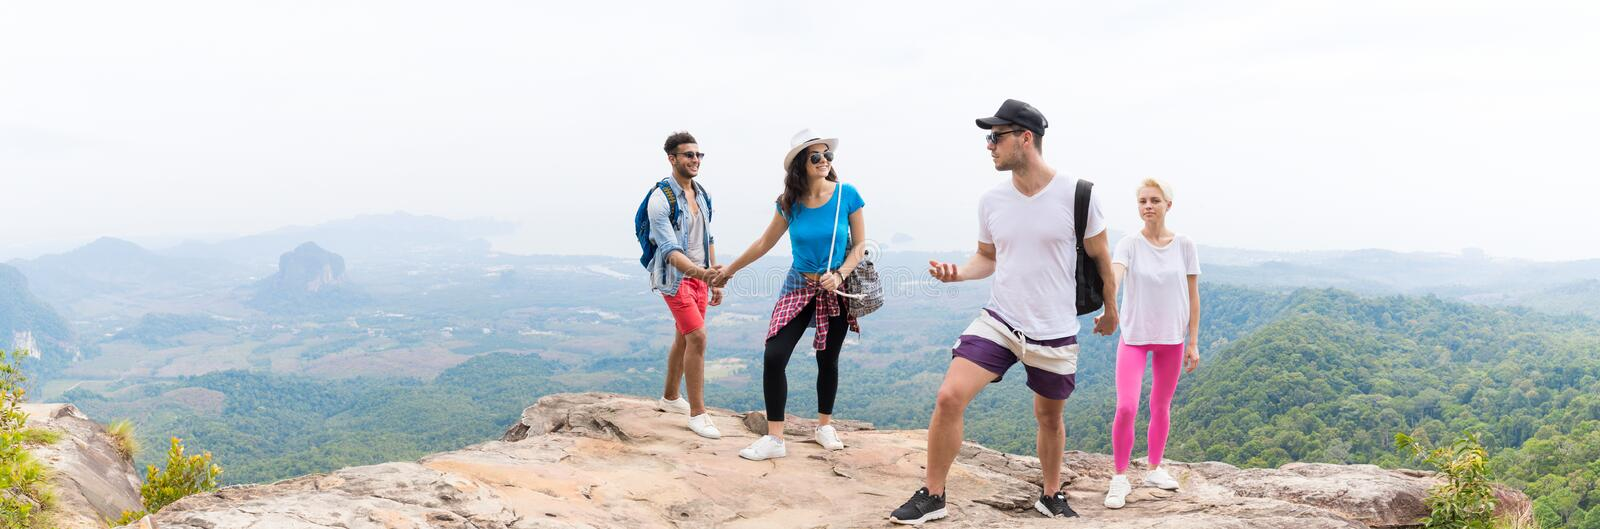 Two Tourist Couple With Backpack On Mountain Top Talking Over Beautiful Landscape Panorama View stock image